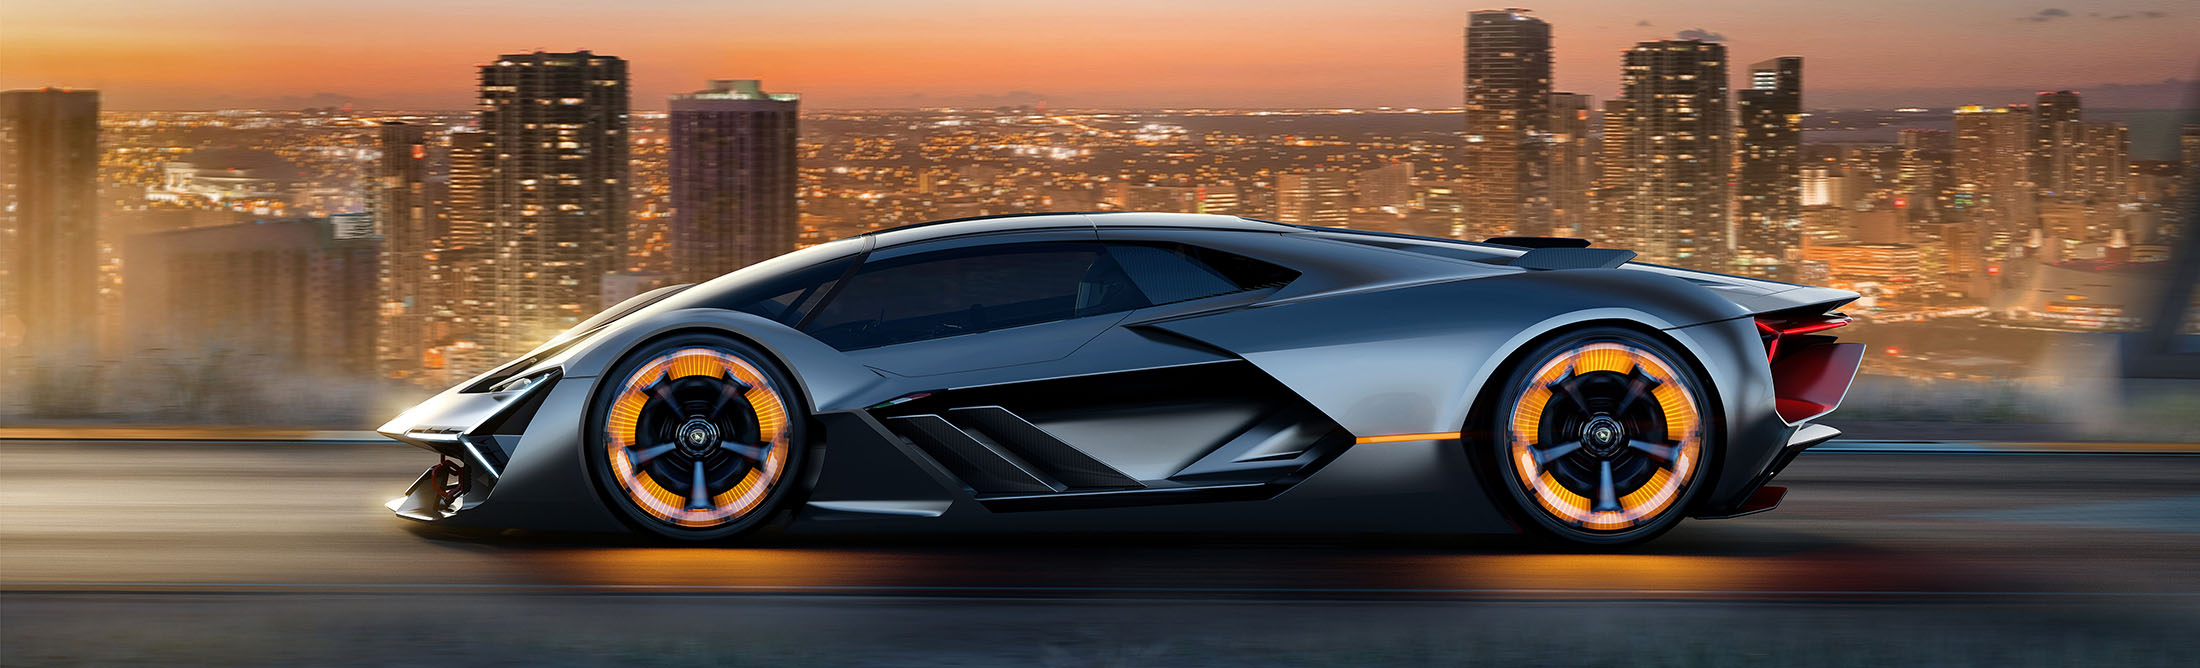 lamborghini car 2018. lamborghini terzo millennio concept self-healing electric supercar - bloomberg car 2018 t